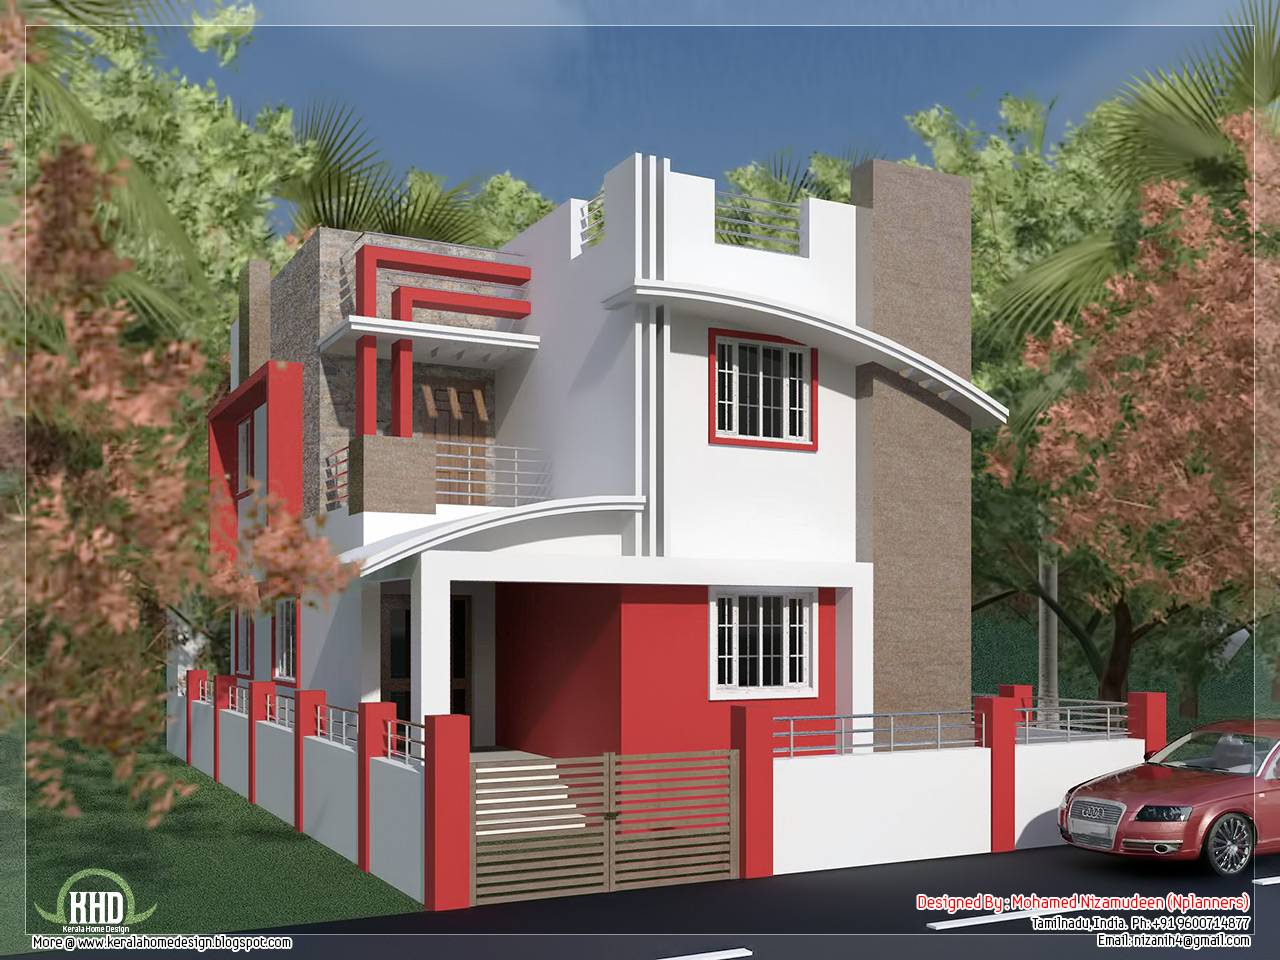 South indian villa in 1375 a taste in heaven for House exterior design pictures in indian